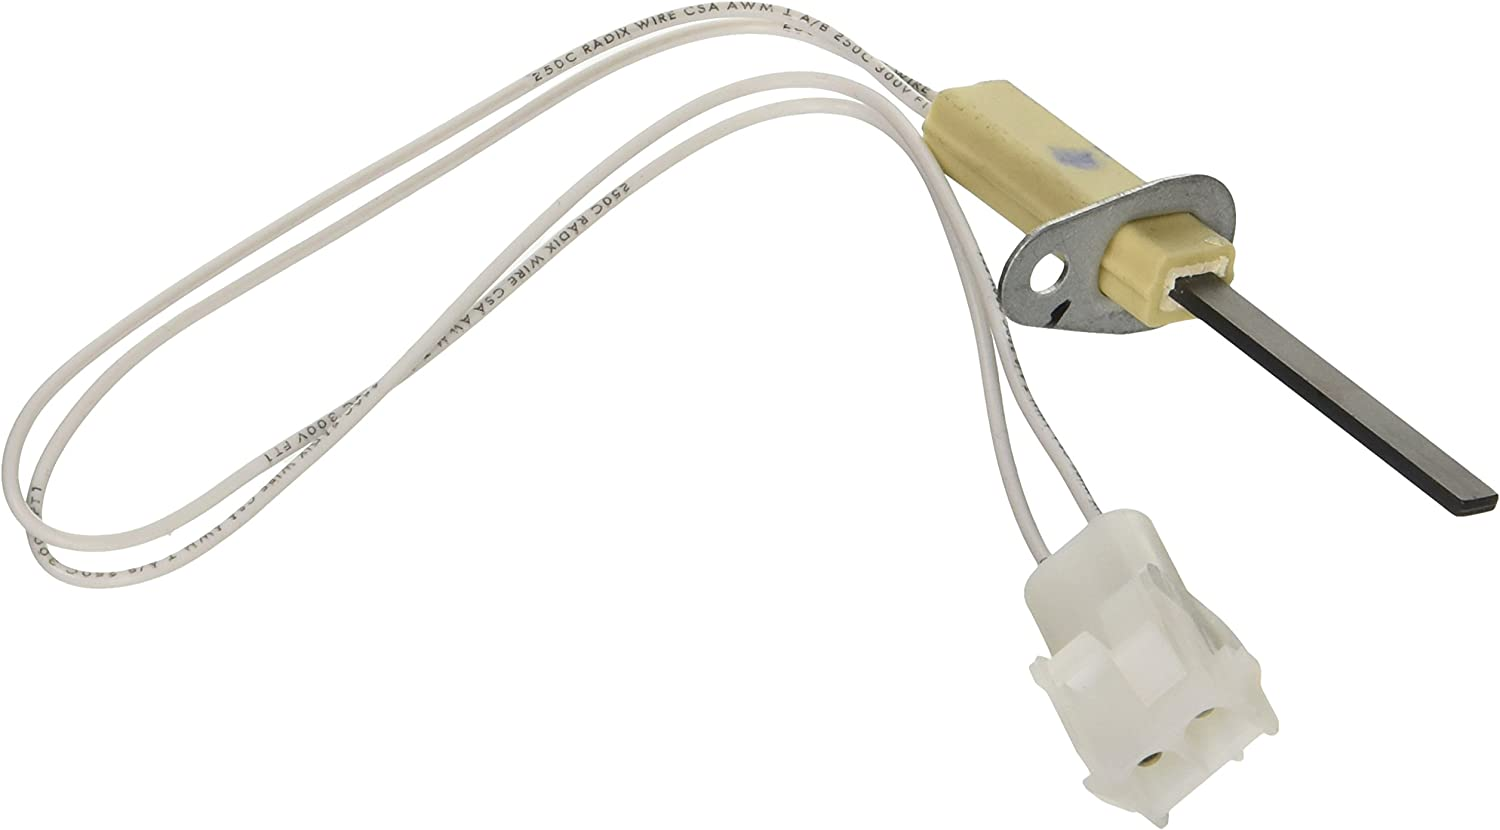 Emerson 768A-844 Hot Surface Ignitor, 80V, Silicon Nitride - Replacement Household Furnace Ignitors -